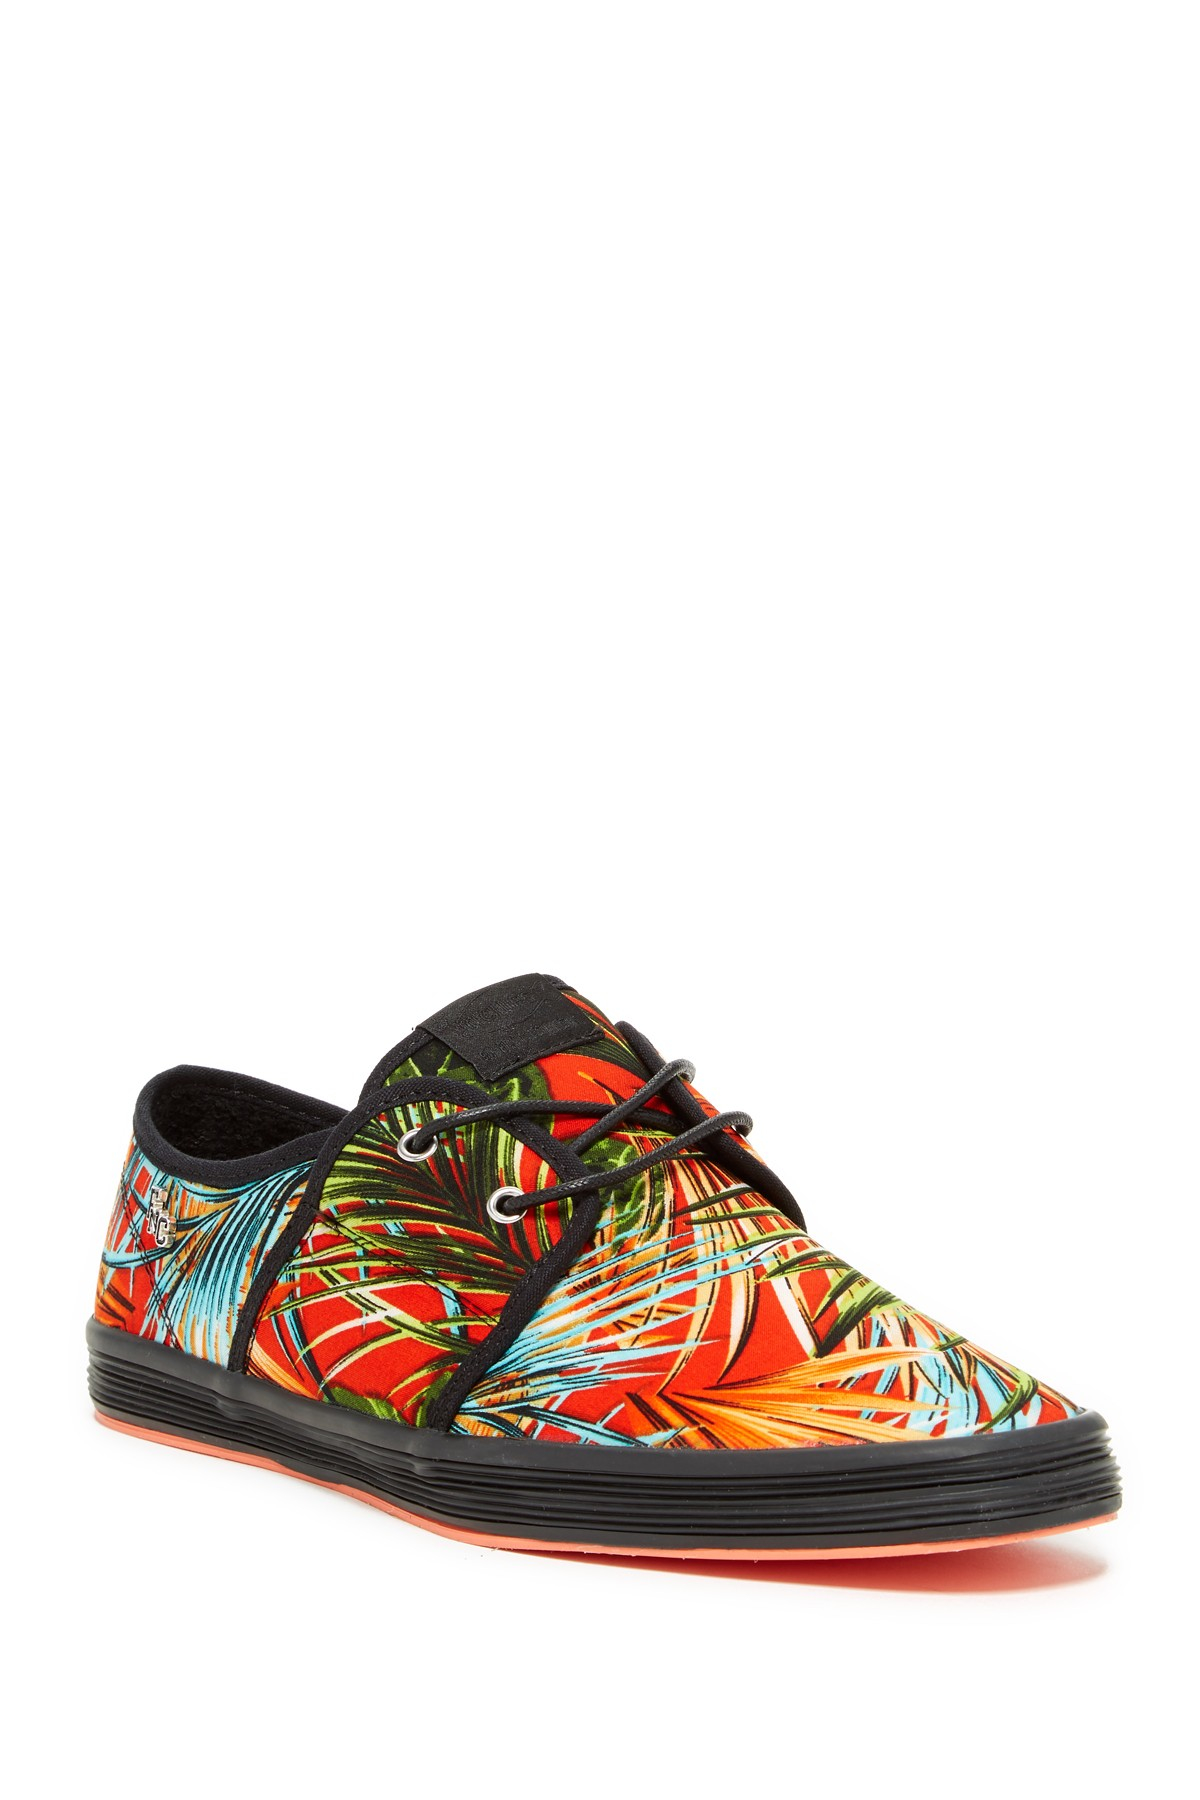 Fish n chips spam 2 aloha sneaker in red lyst for Fish and chips shoes